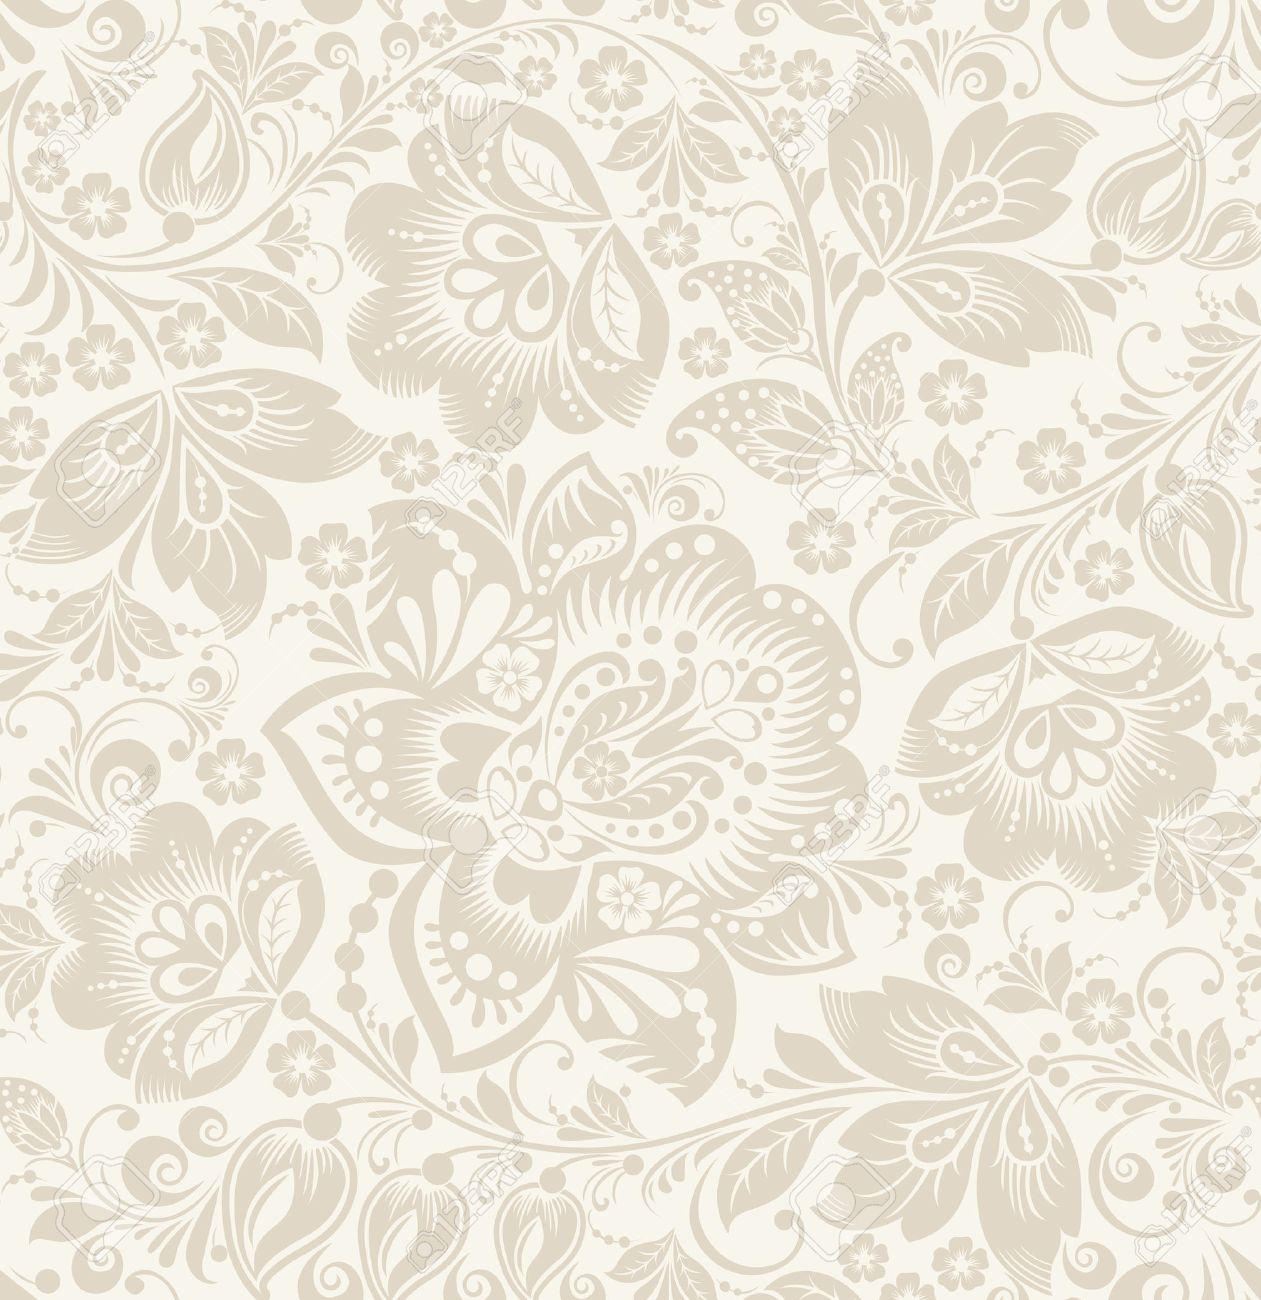 Vector Floral Vintage Rustic Seamless Pattern Background Can